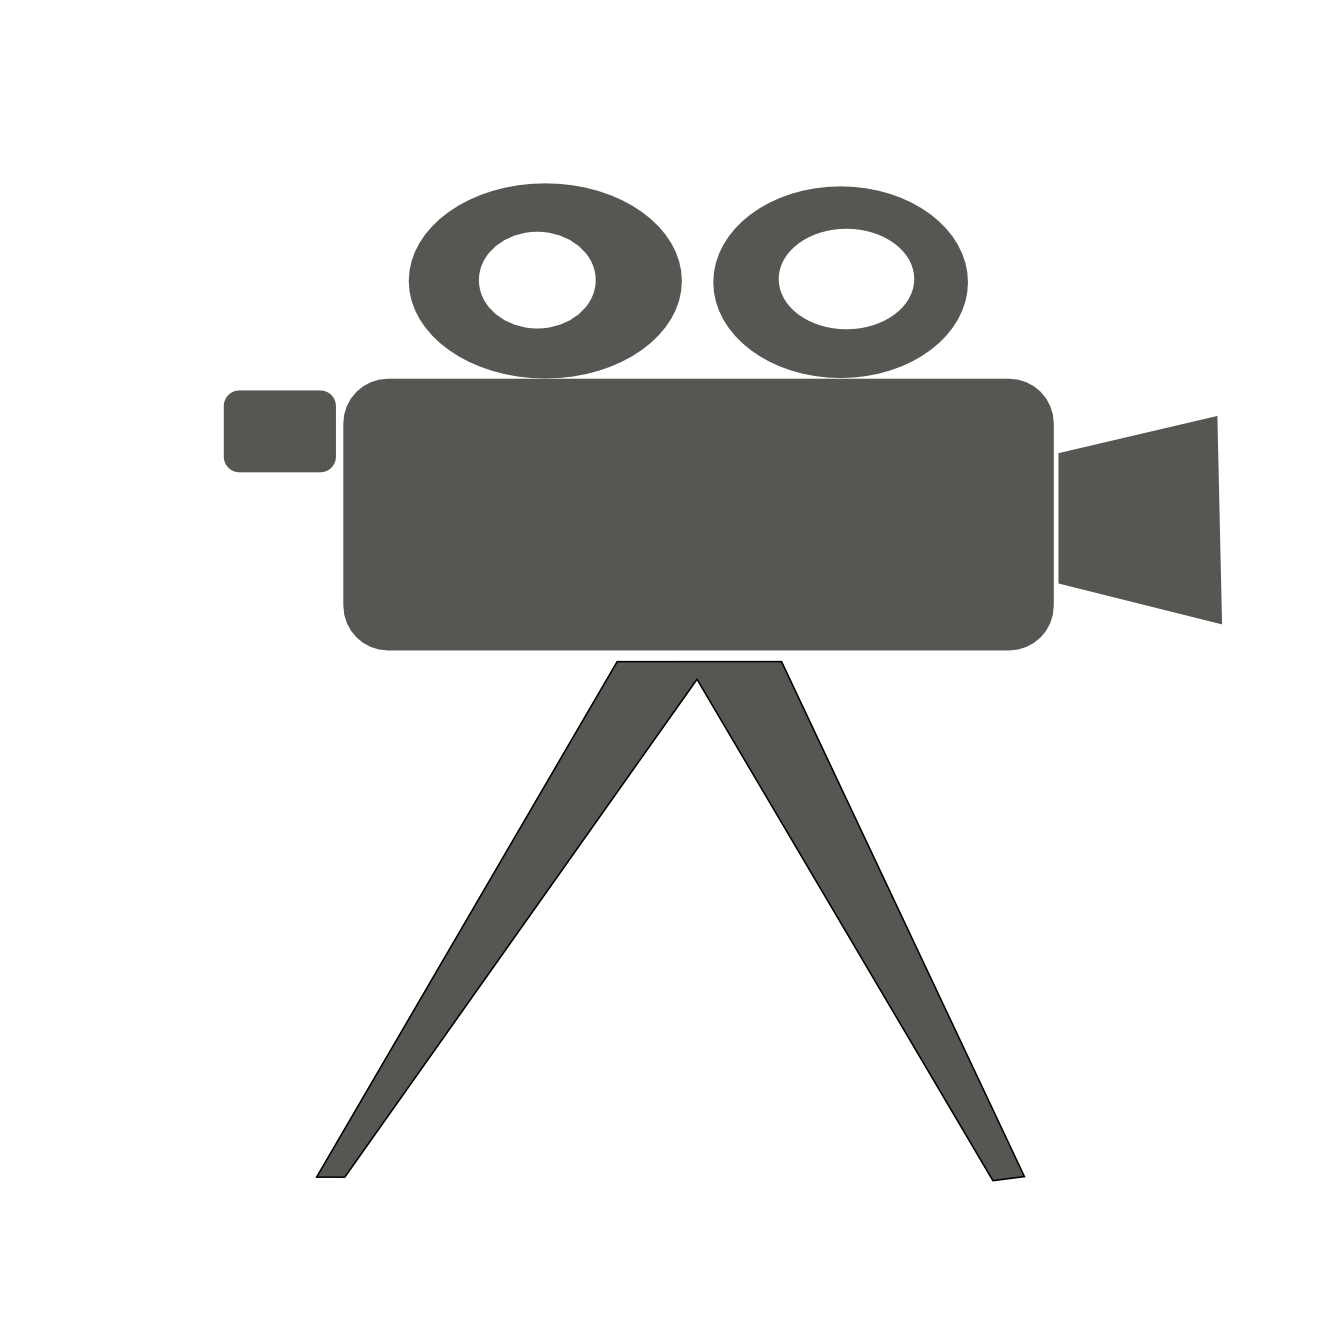 Video Camera Clipart | Clipart Panda - Free Clipart Images